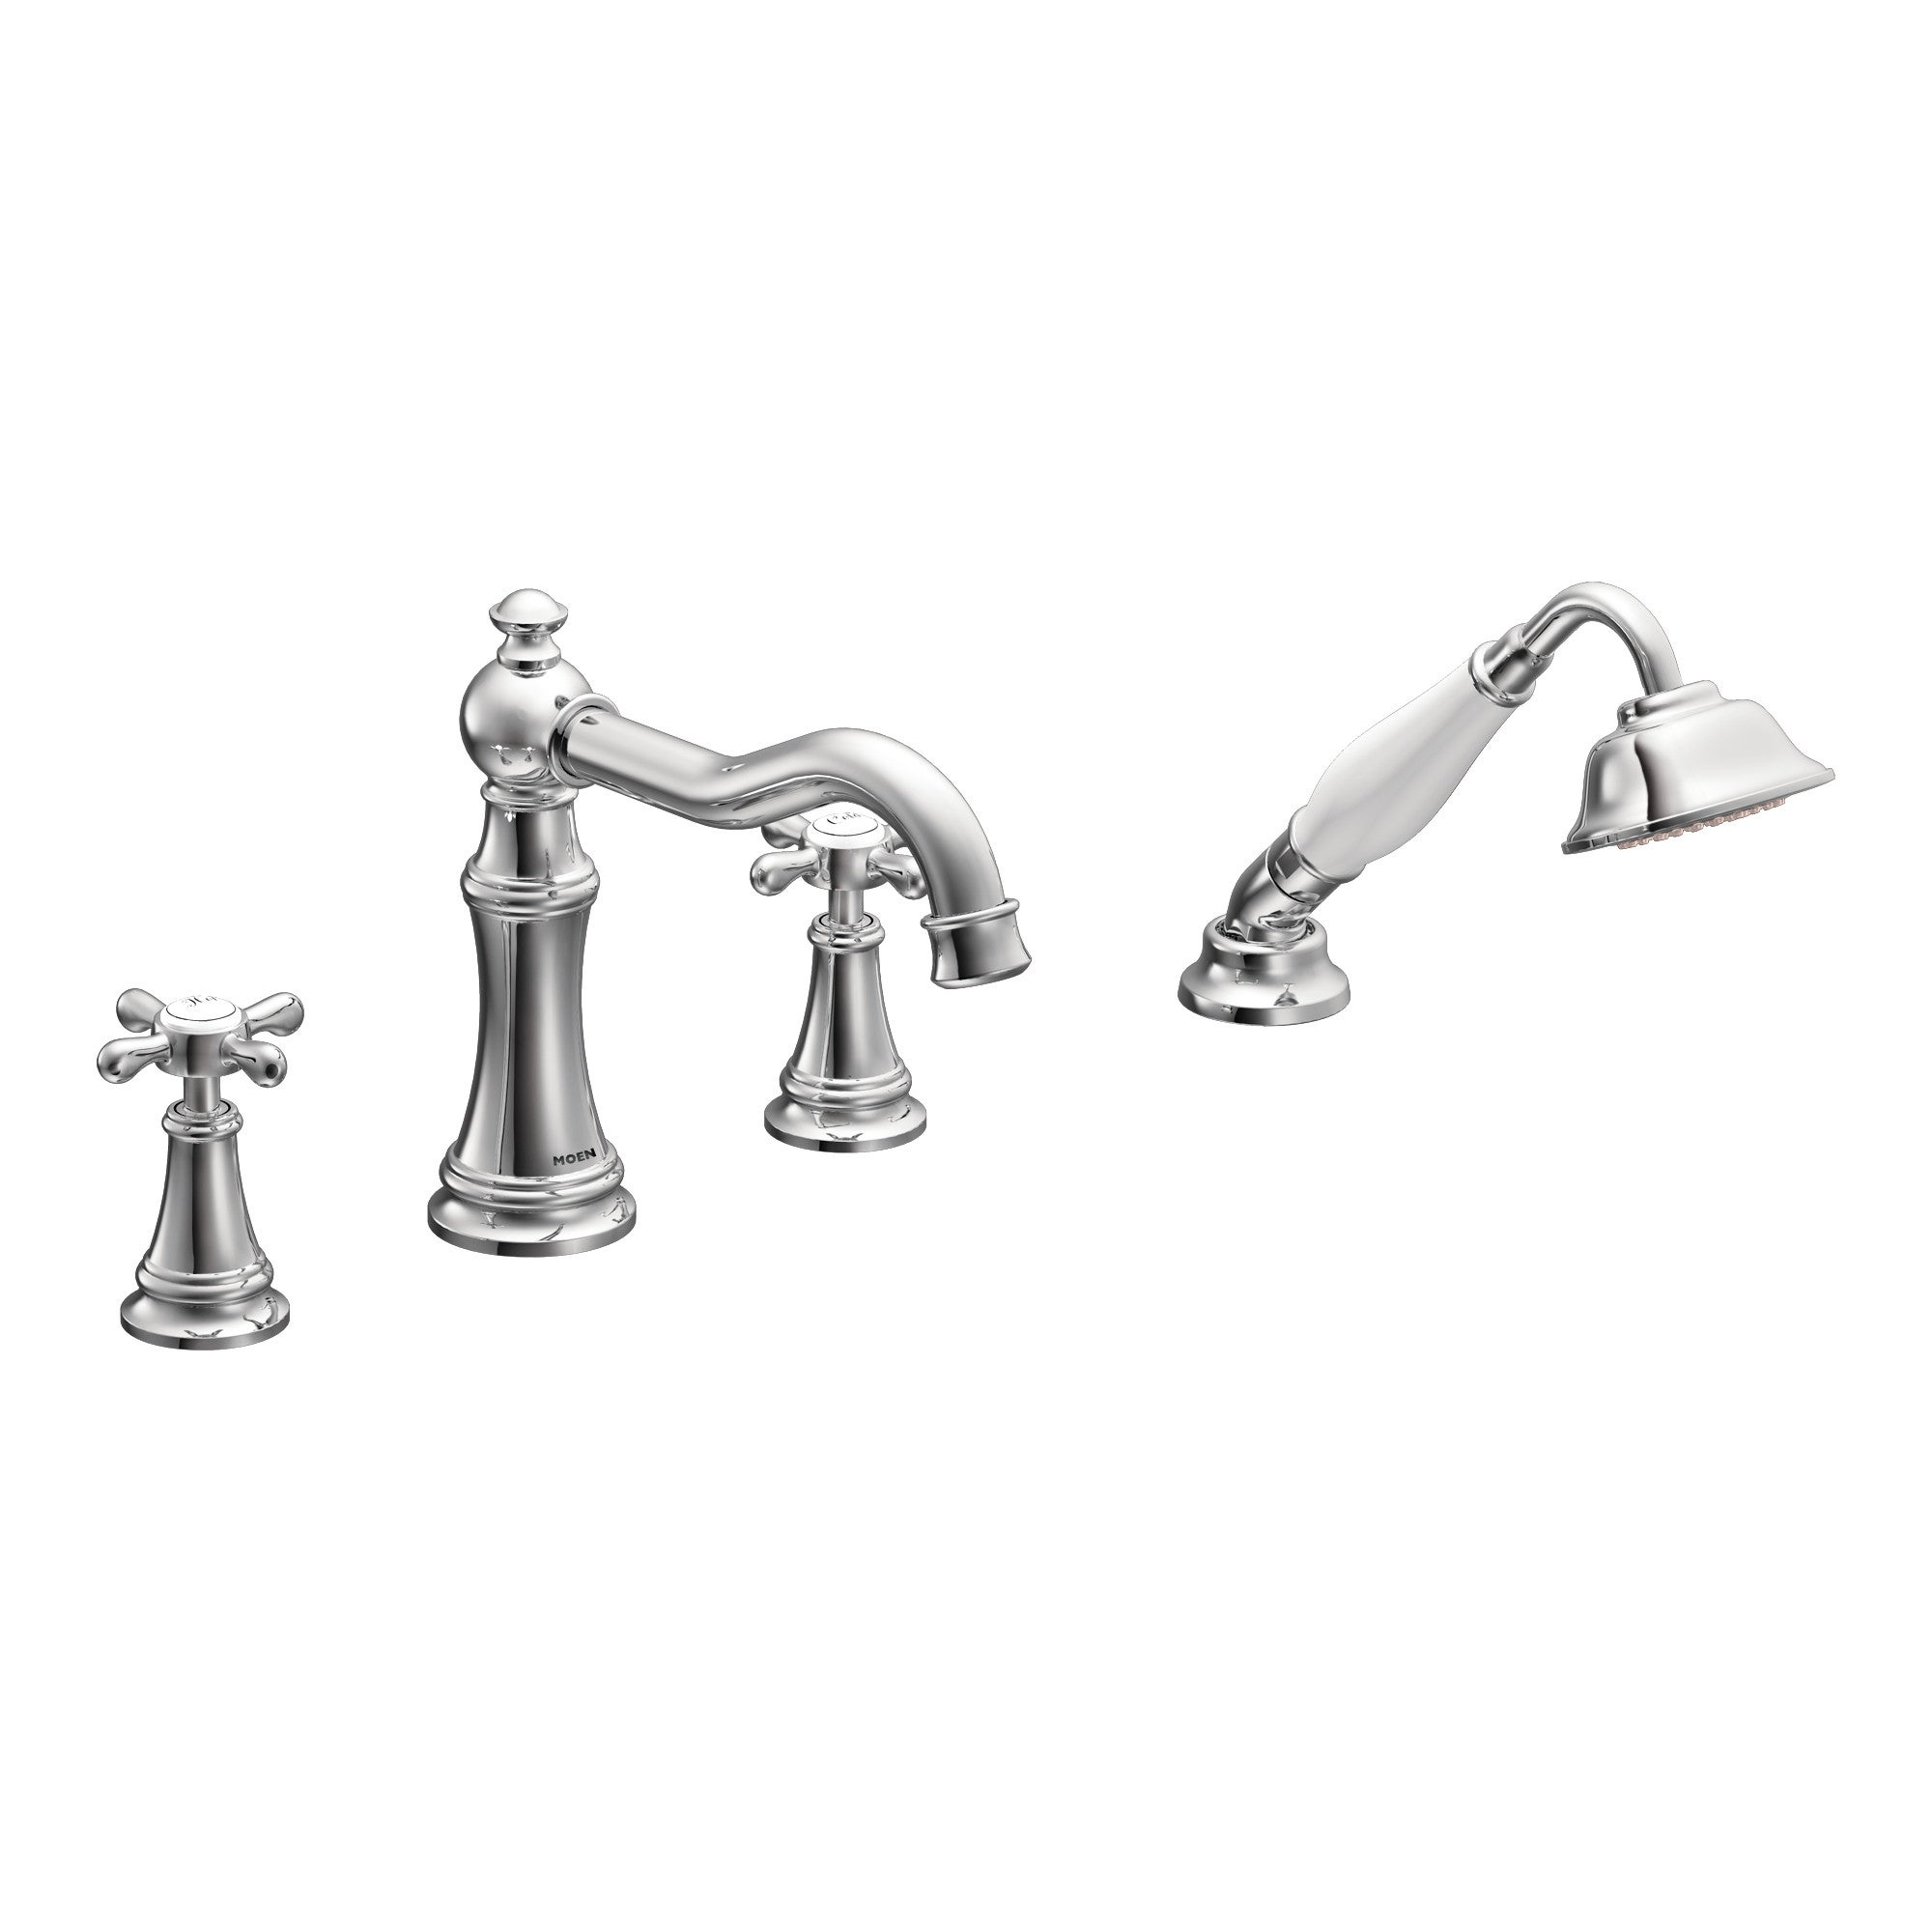 parts repair furniture best kitchen bar faucet faucets purist repairs unique metering grohe delta lowes replacement kohler